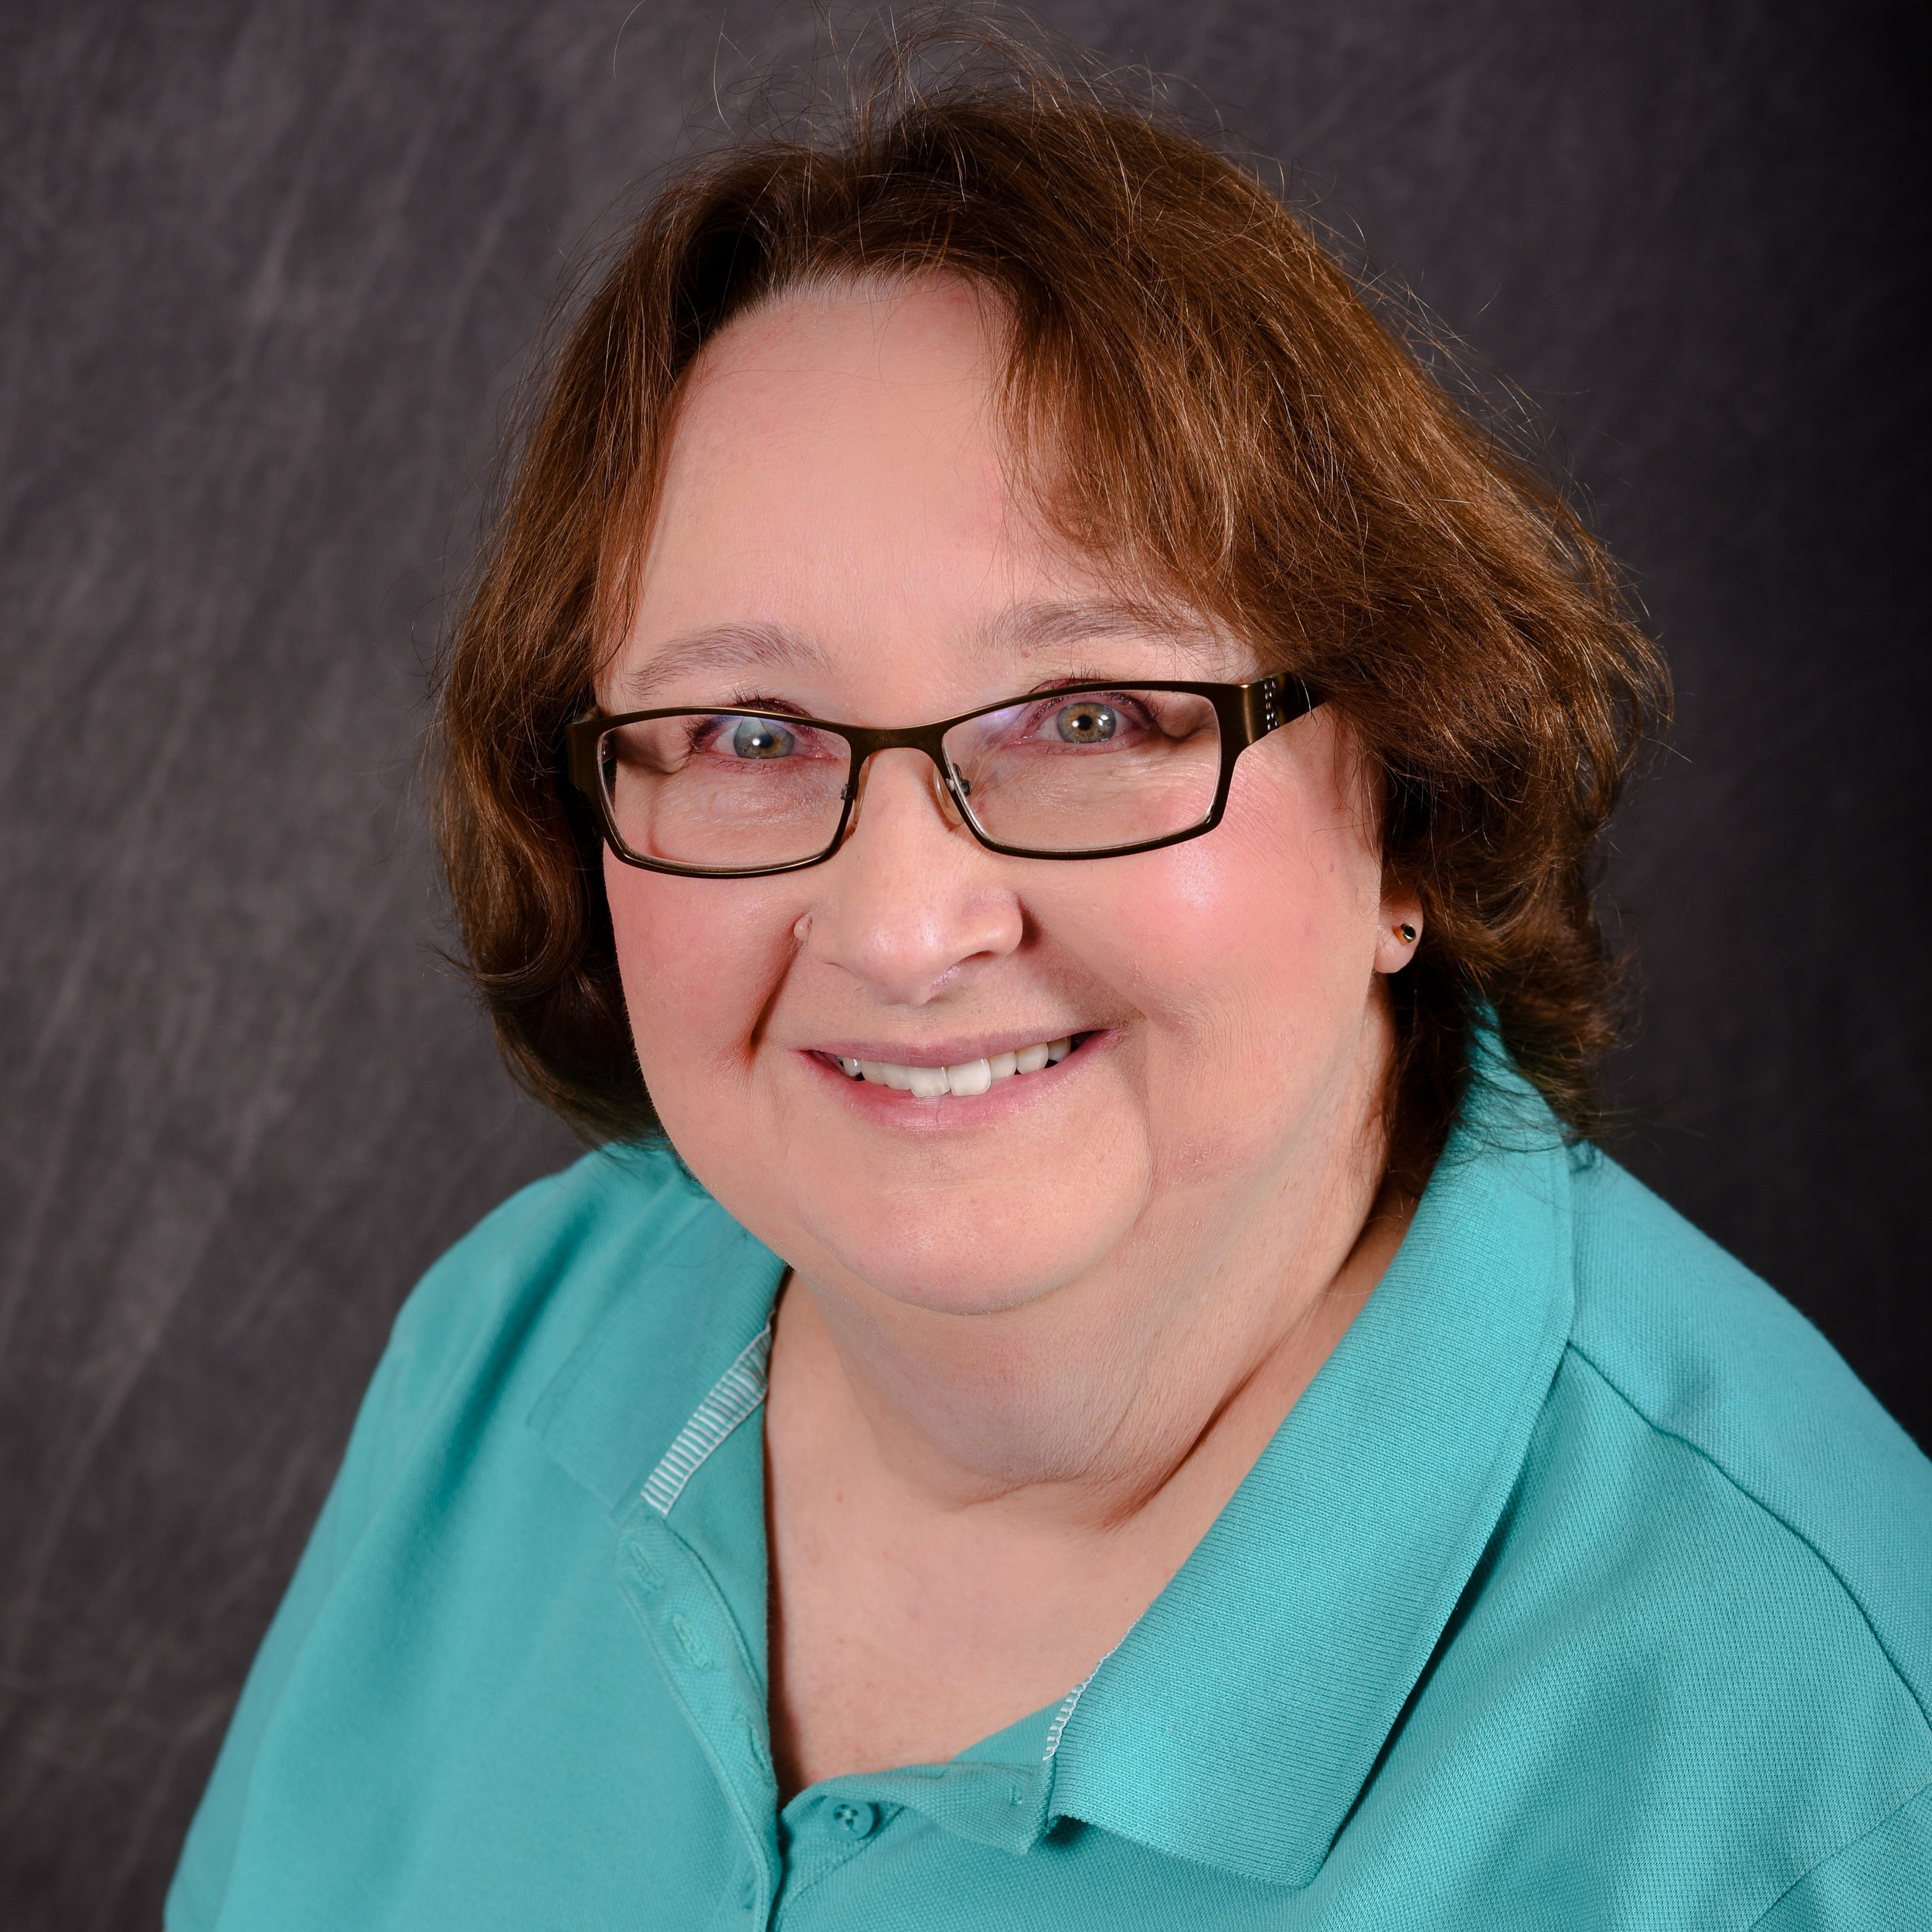 susan SmithVice President - Occupation: Educator at Charlotte Mecklenburg SchoolsFavorite Musical: ChessFirst Theatre Experience: National Tour of Fiddler on the Roof20+ Years of InvolvementSusan is heavily involved in theatre. In her downtime, she dabbles in photography and enjoys spending time with her 2 kids and 2 cats!